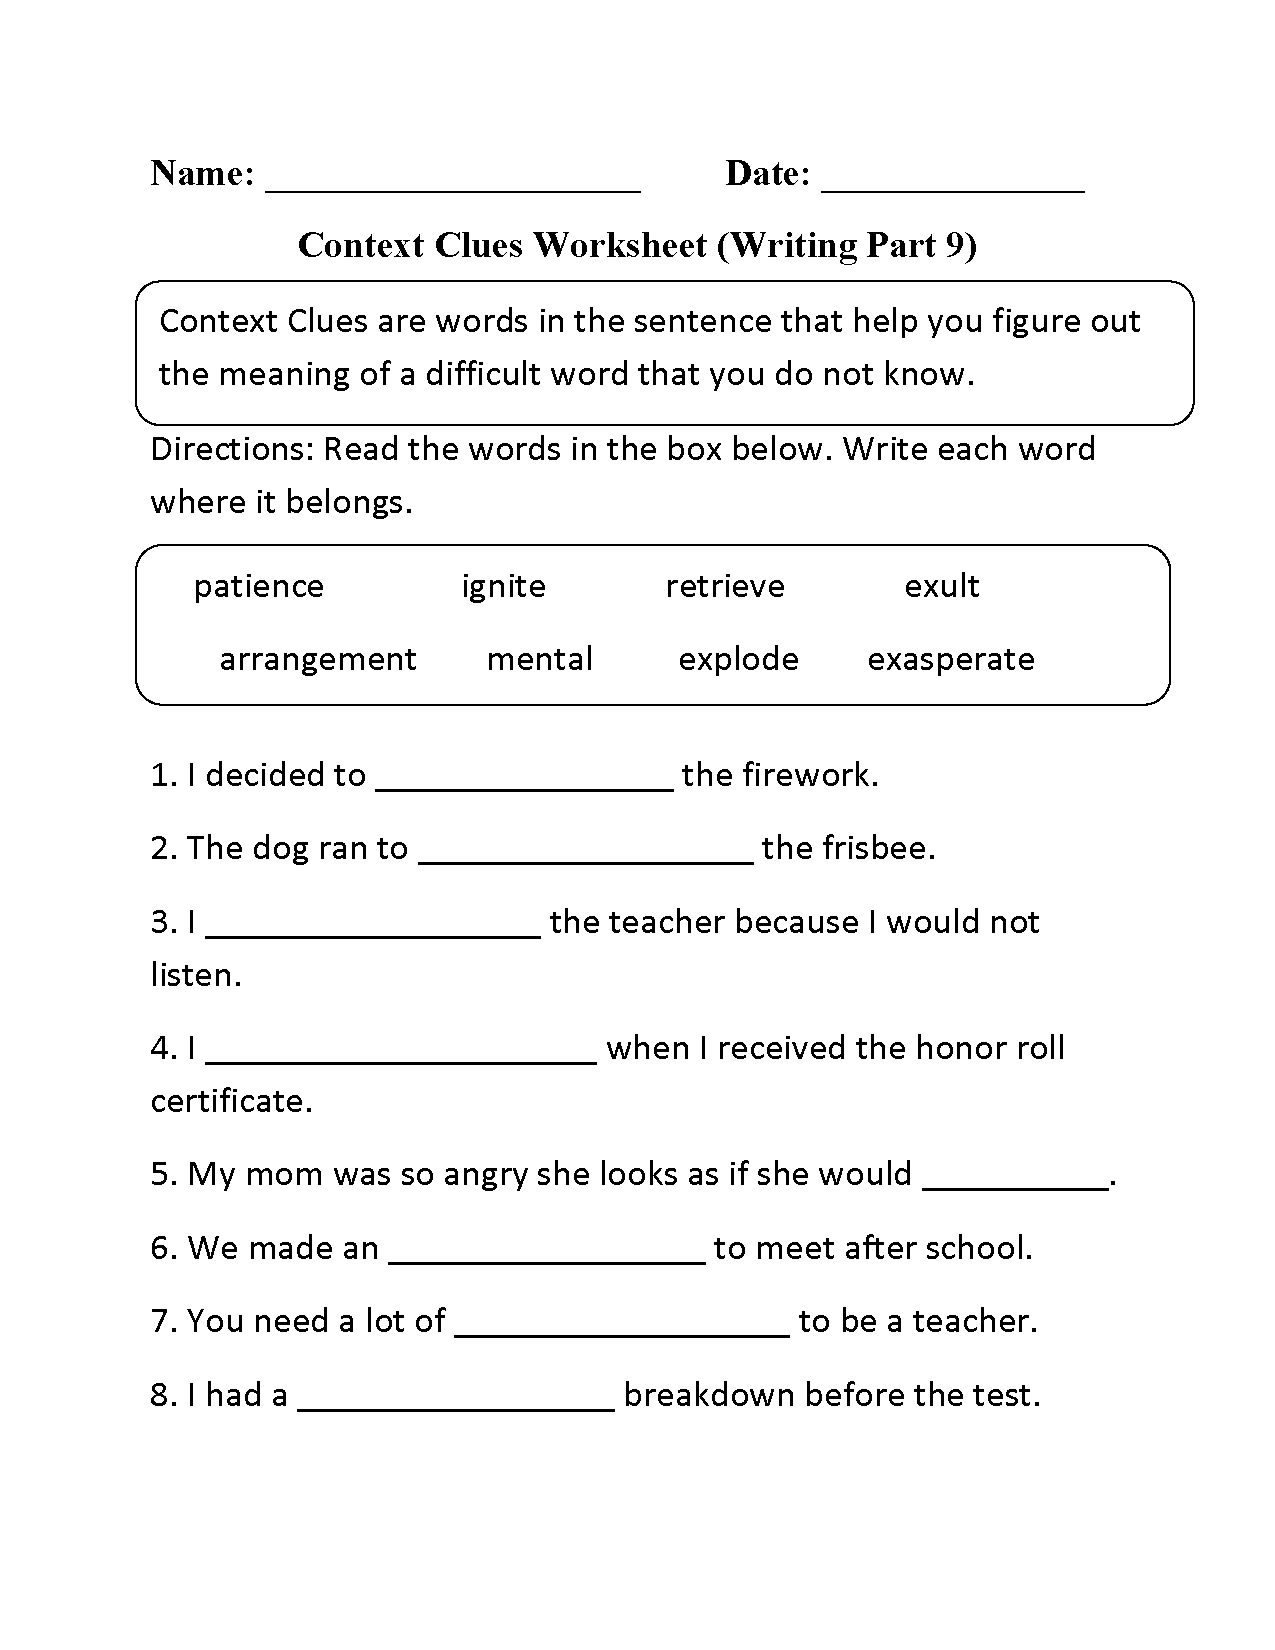 Context Clues Worksheet Halloween